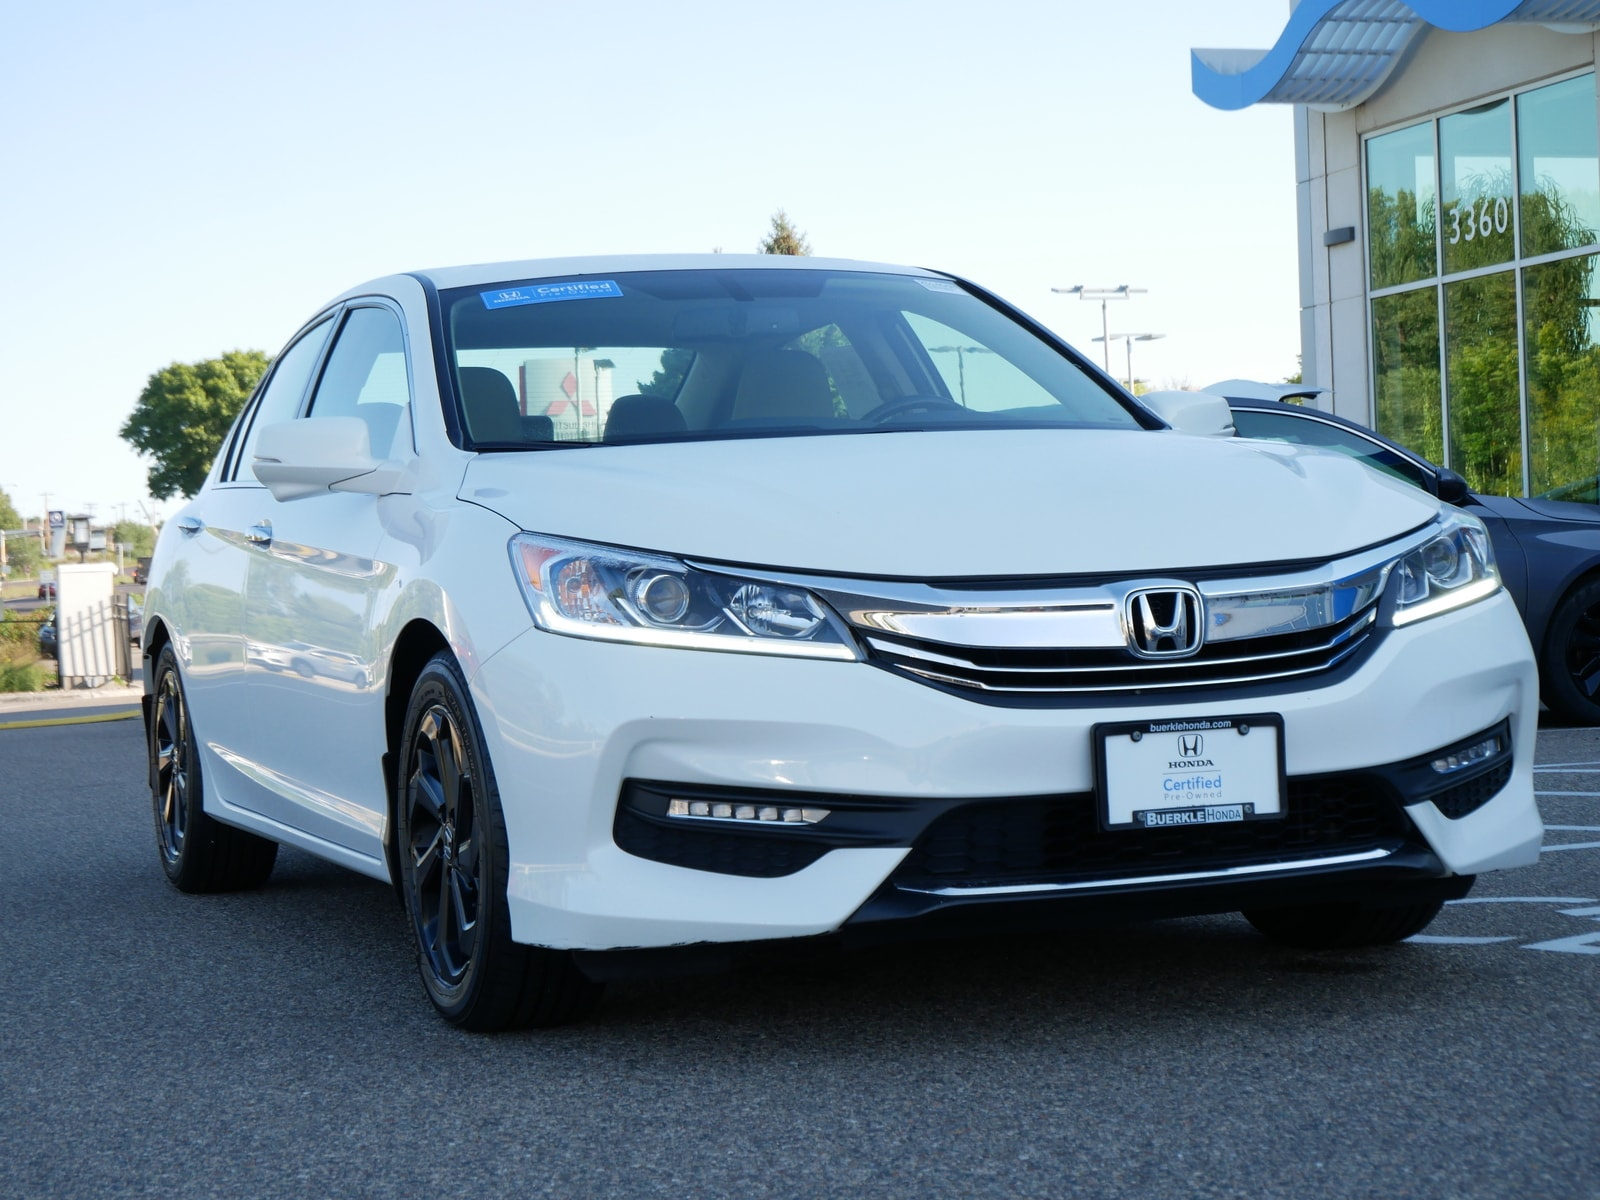 Certified 2017 Honda Accord EX-L with VIN 1HGCR2F8XHA069538 for sale in Saint Paul, Minnesota